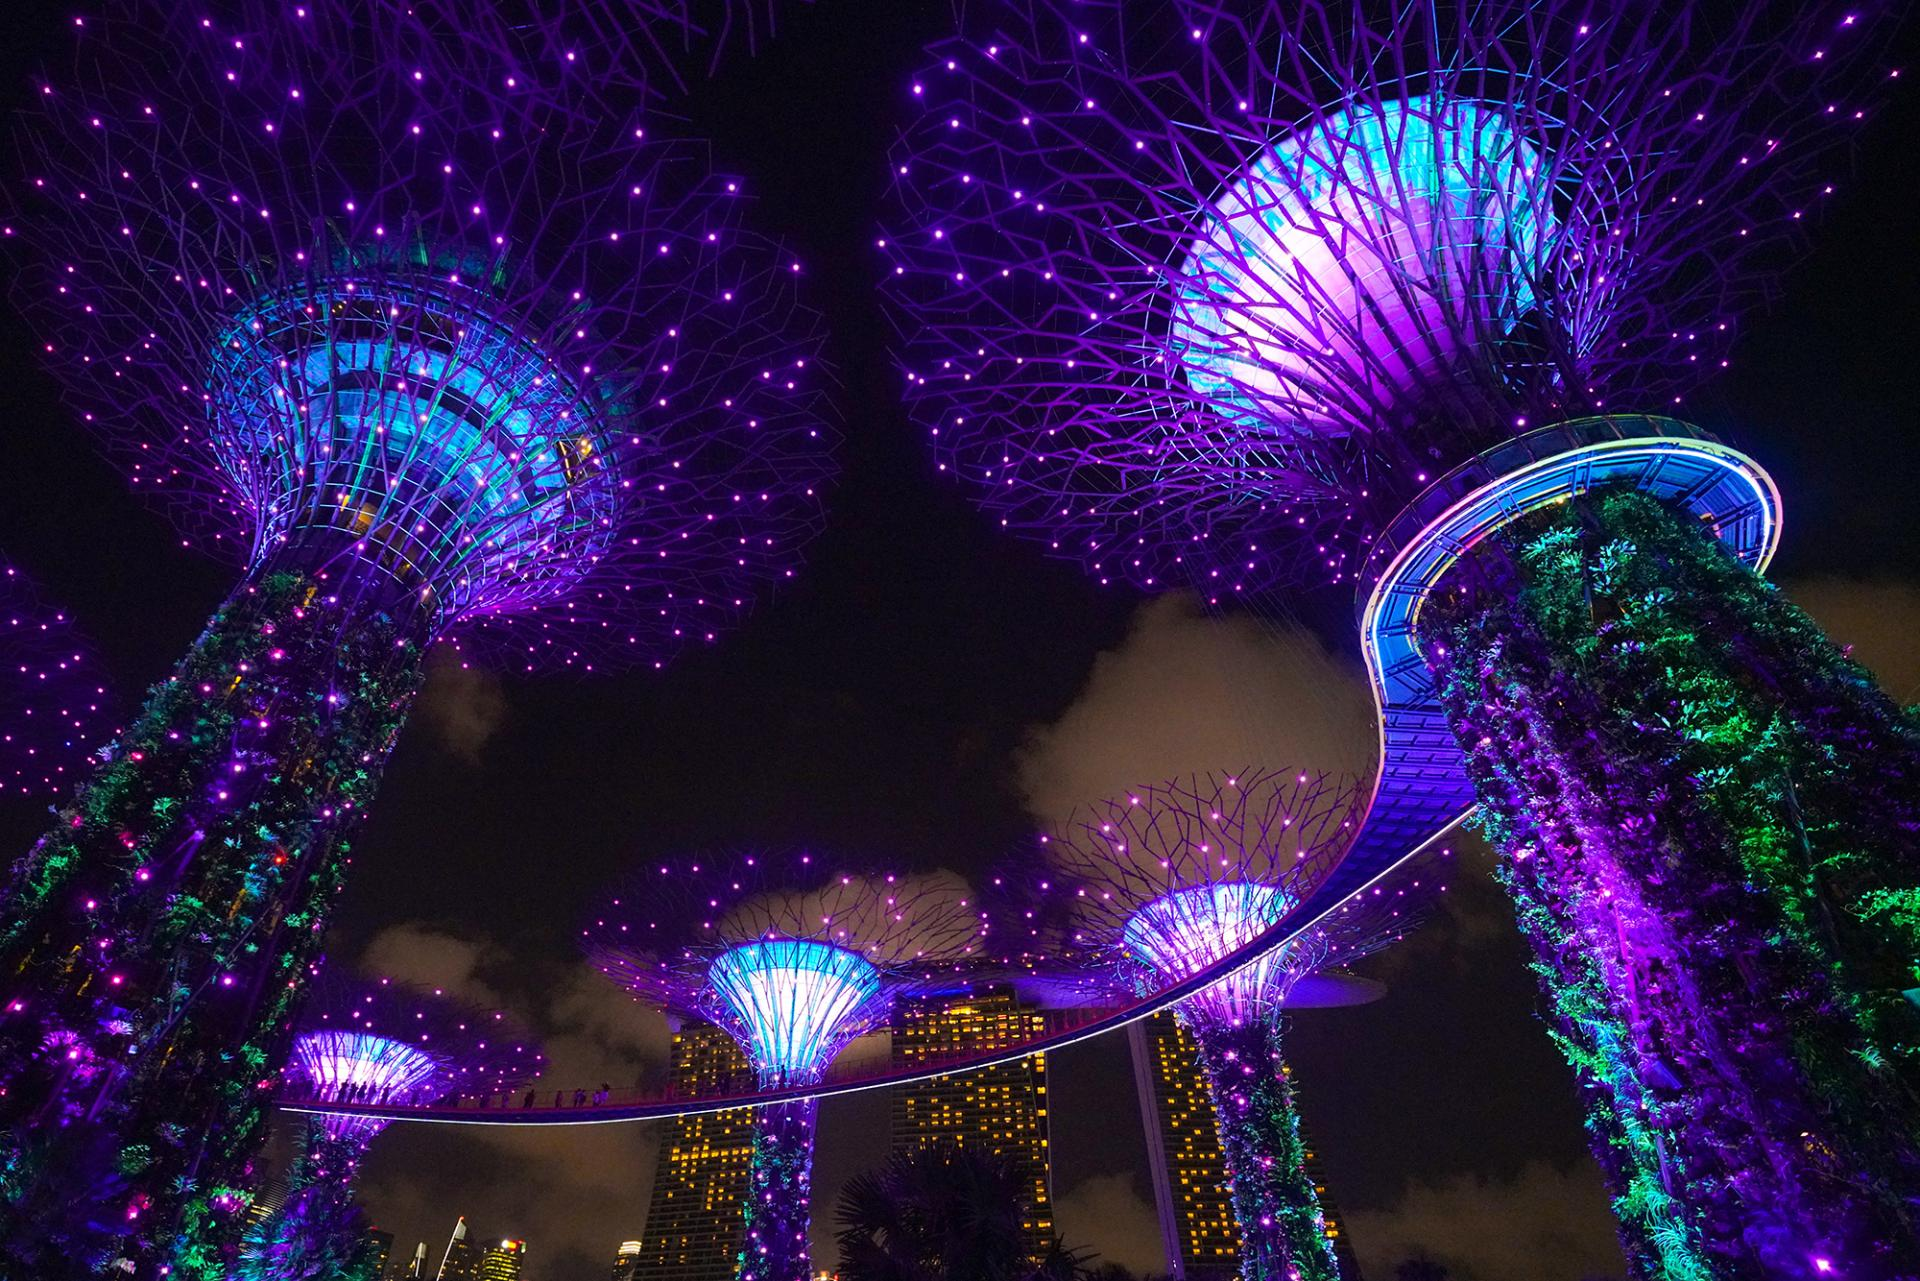 Light show at Supertree Grove in Gardens by the Bay.